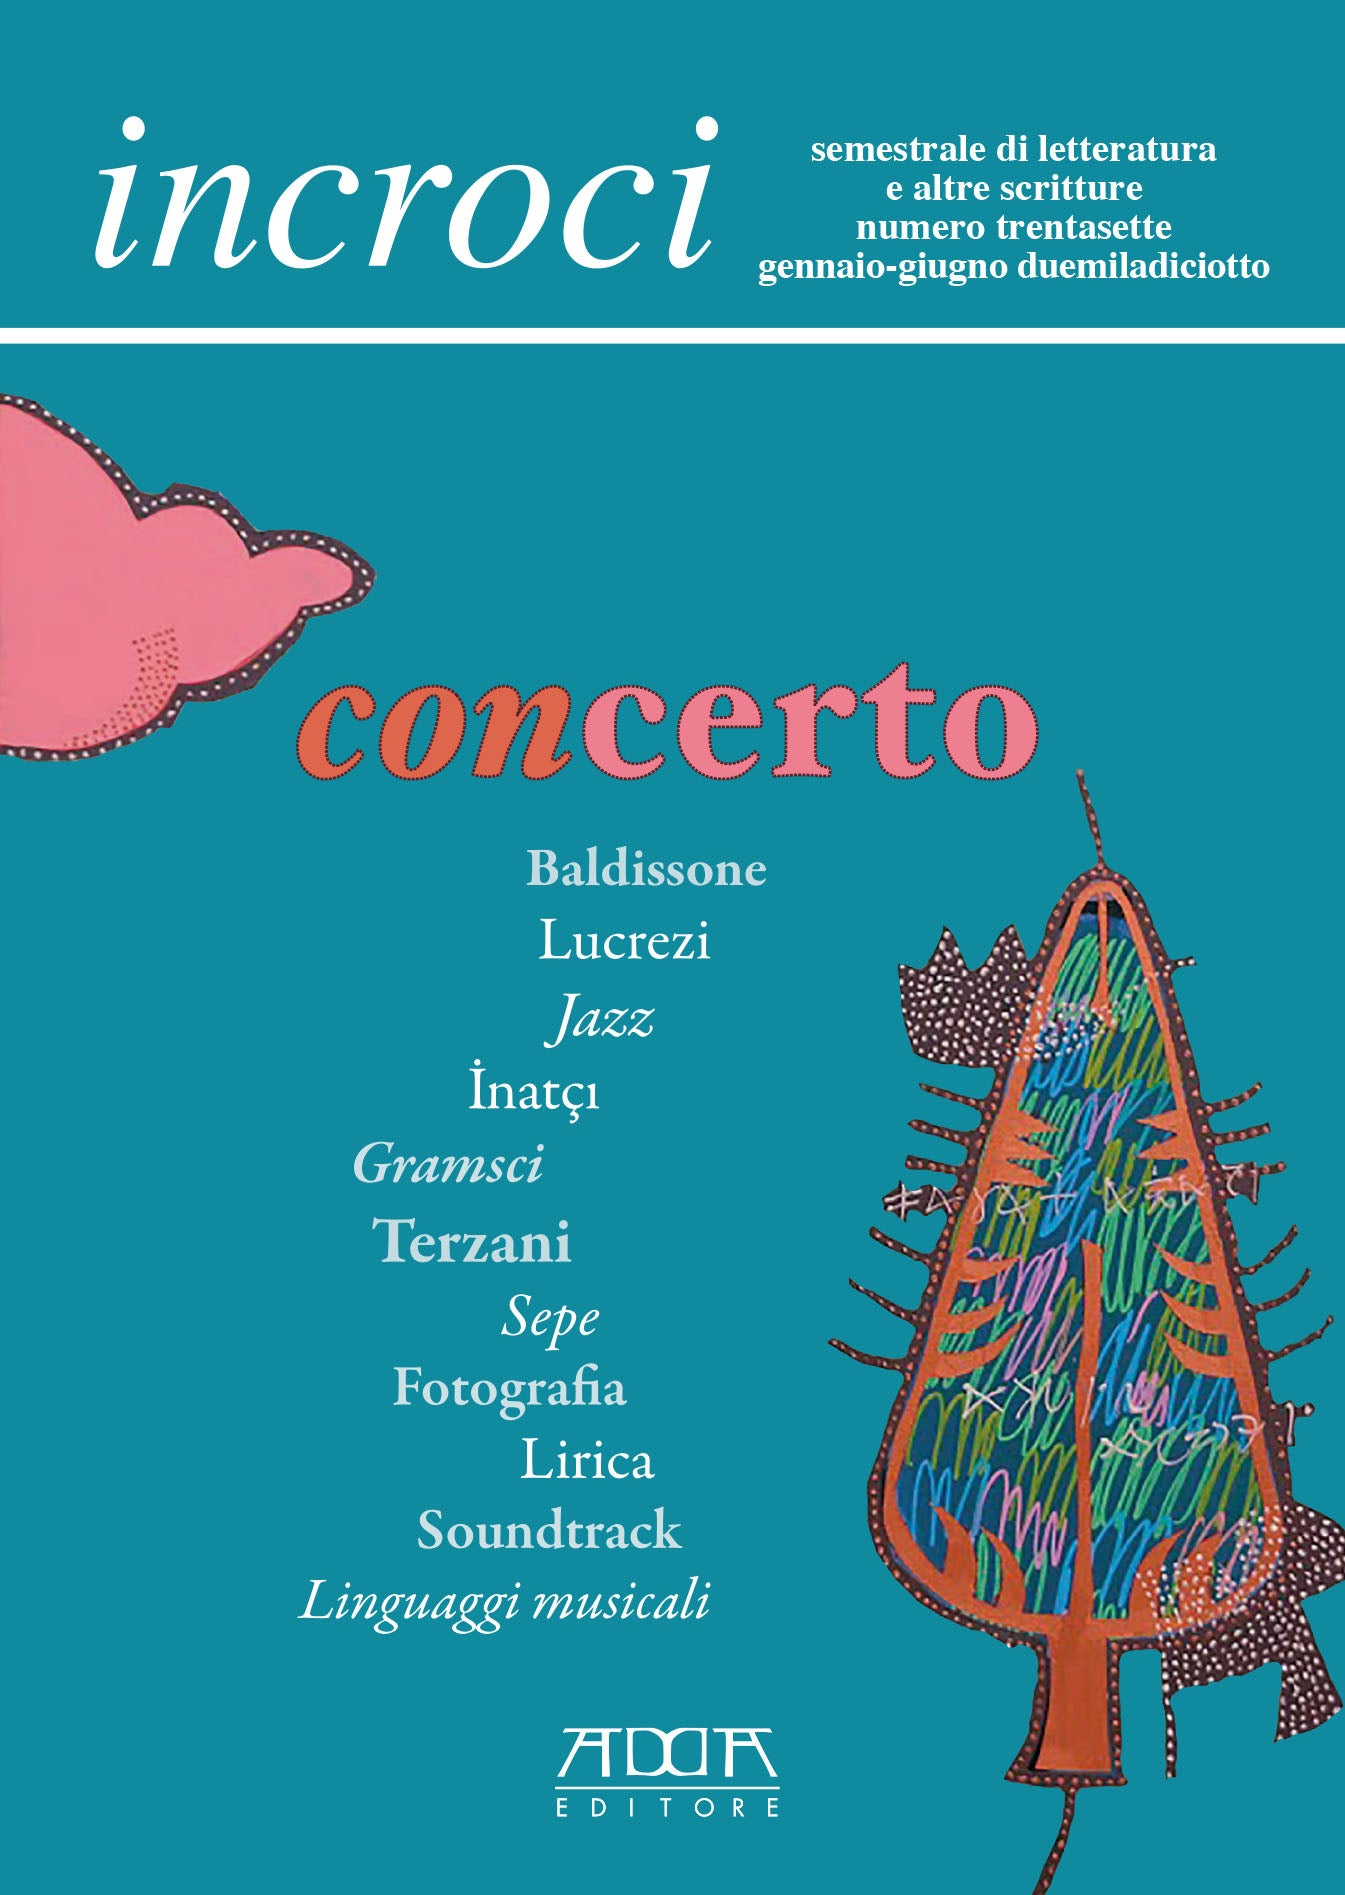 Concerto - incroci n. 37 - versione digitale